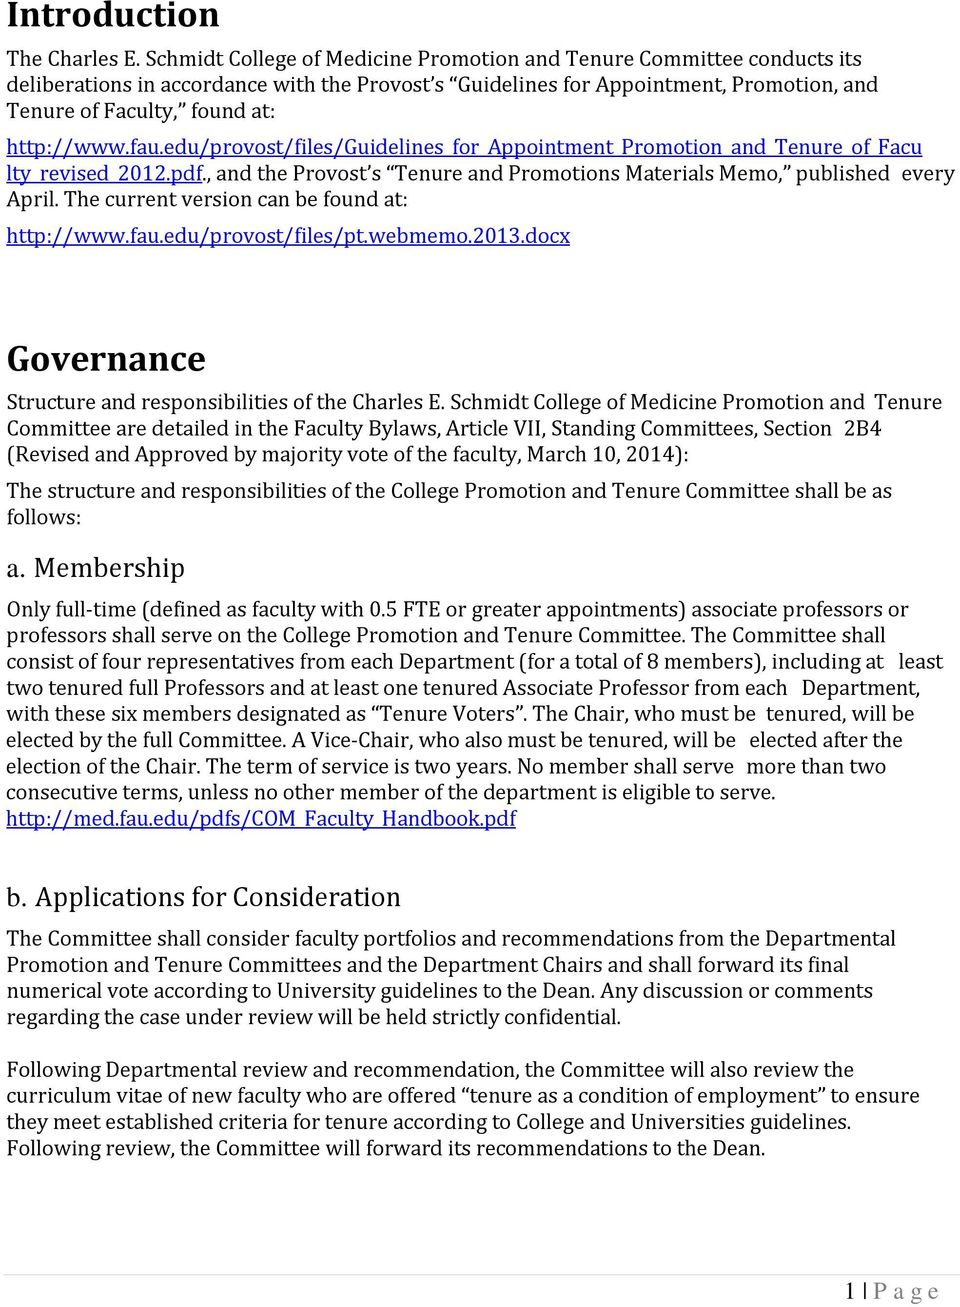 http://www.fau.edu/provost/files/guidelines_for_appointment_promotion_and_tenure_of_facu lty_revised_2012.pdf., and the Provost s Tenure and Promotions Materials Memo, published every April.